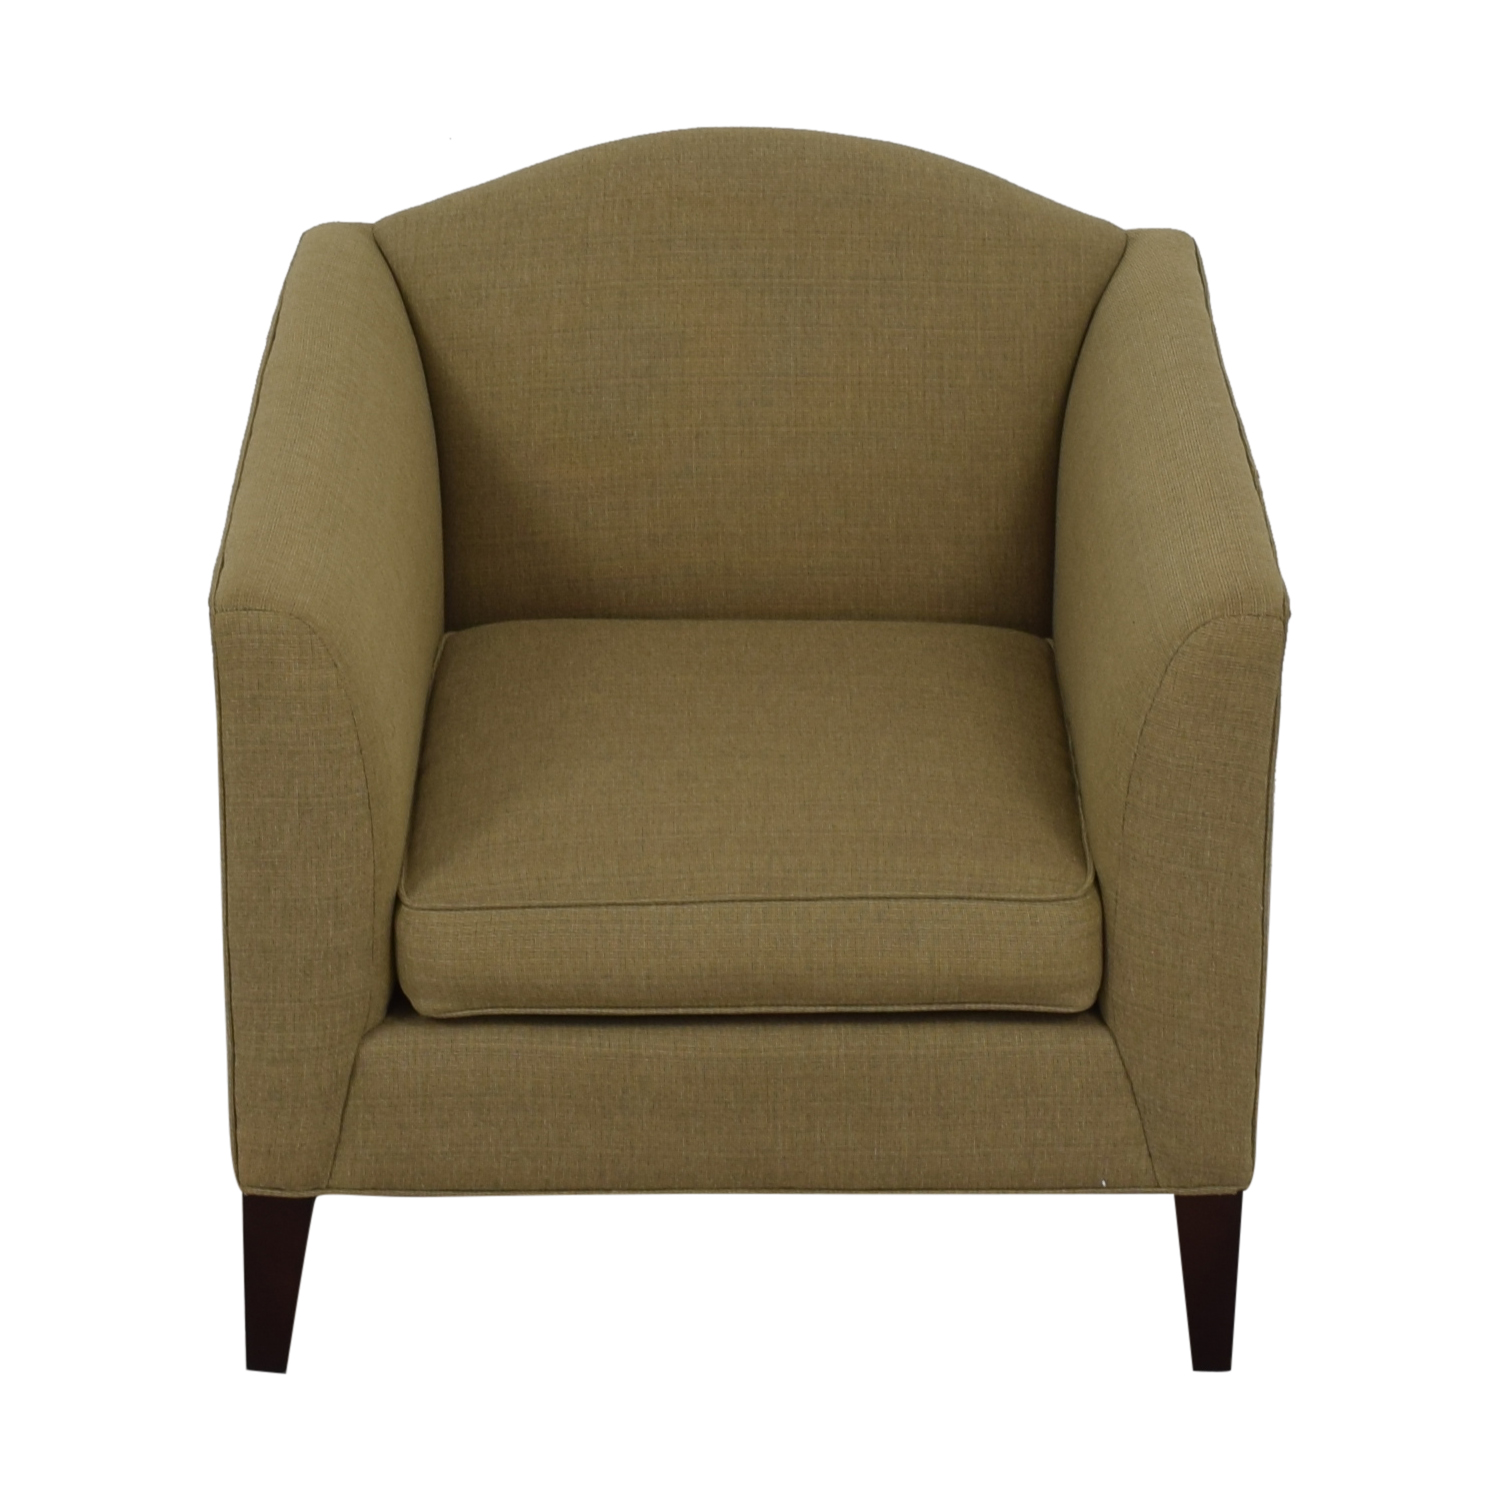 Room & Board Room & Board Flanagan Grey Accent Chair for sale